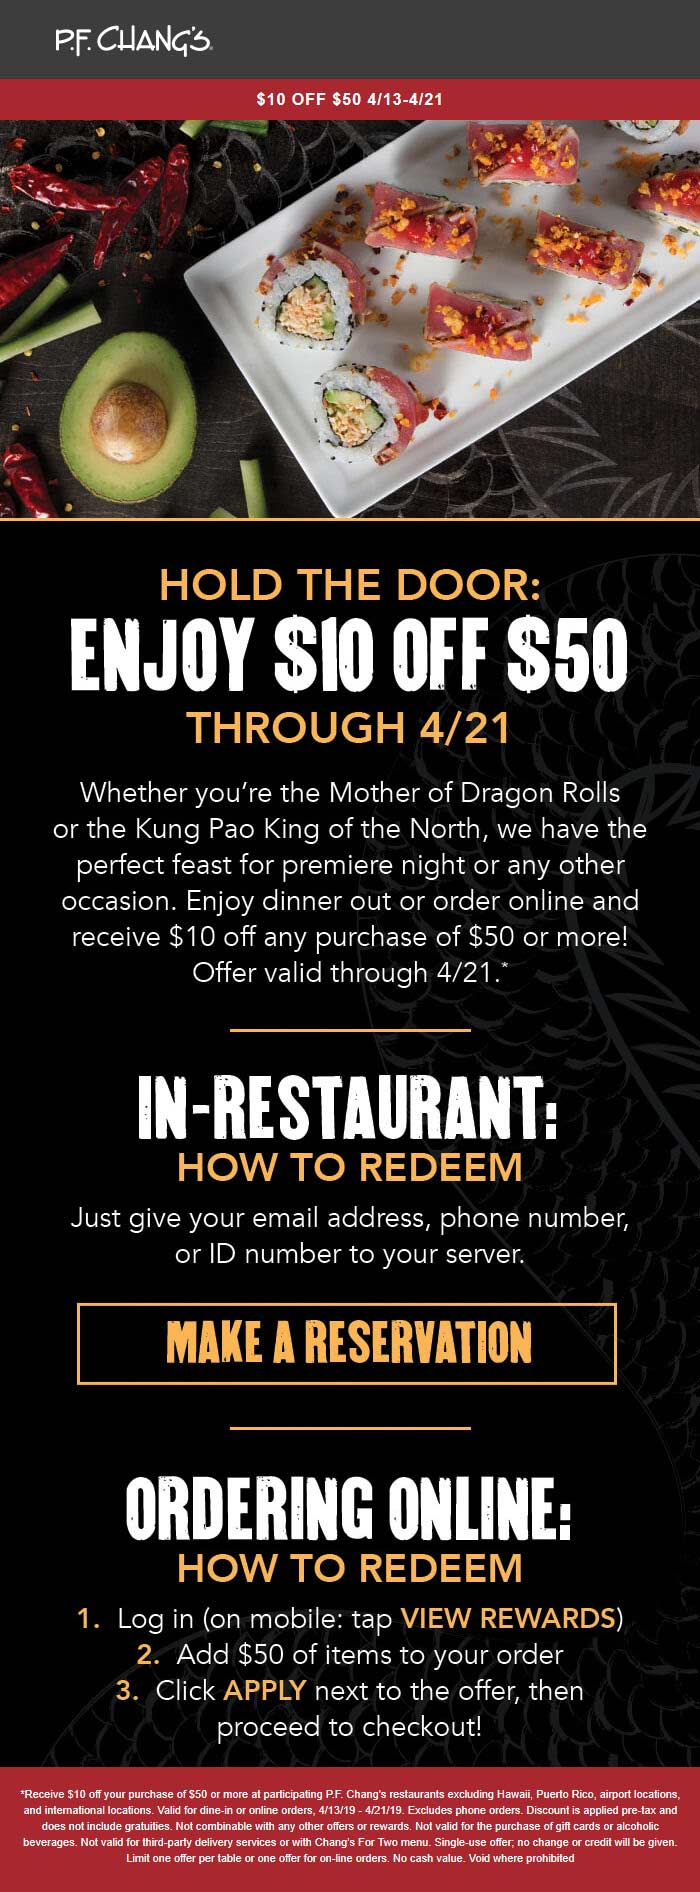 P.F. Changs Coupon April 2019 $10 off $50 for rewards members at P.F. Changs